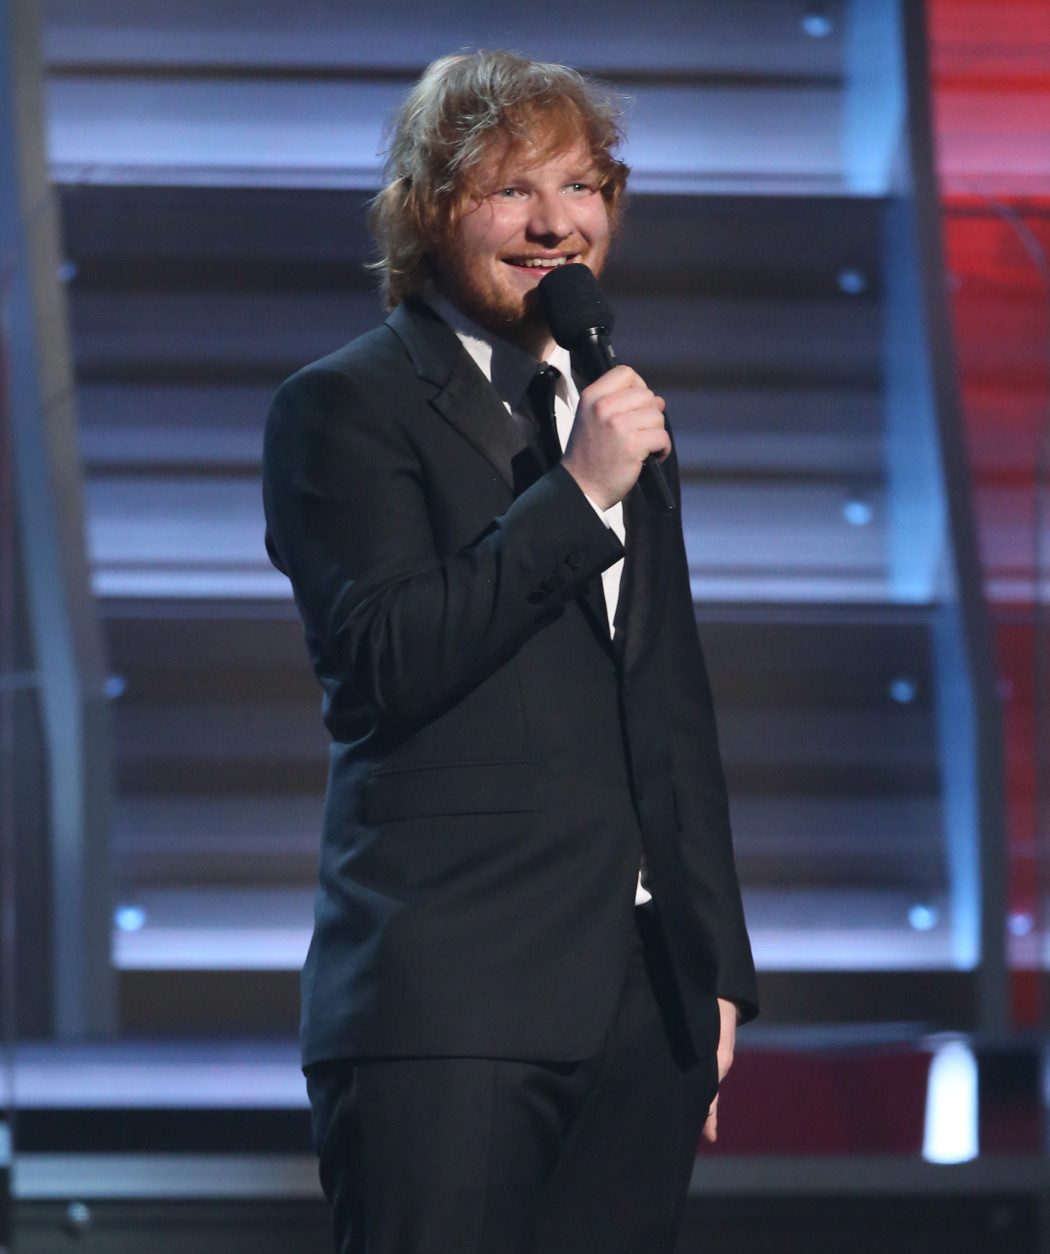 Ed Sheeran introduces a performance by Lady Gaga at the 58th annual Grammy Awards on Monday, Feb. 15, 2016, in Los Angeles. (Photo by Matt Sayles/Invision/AP)